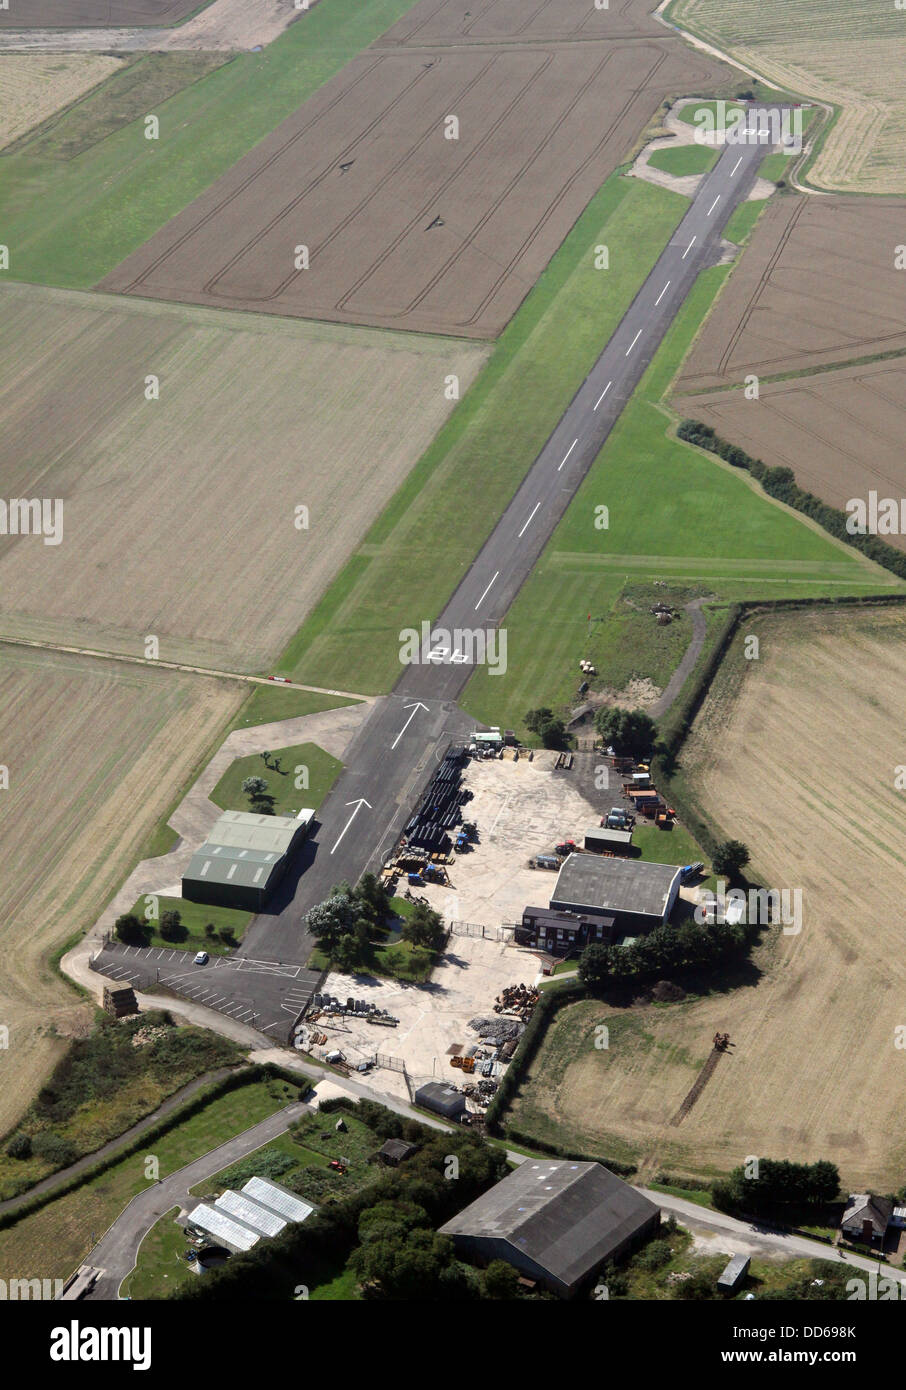 aerial view of Strubby airfield near Alford in Lincolnshire - Stock Image